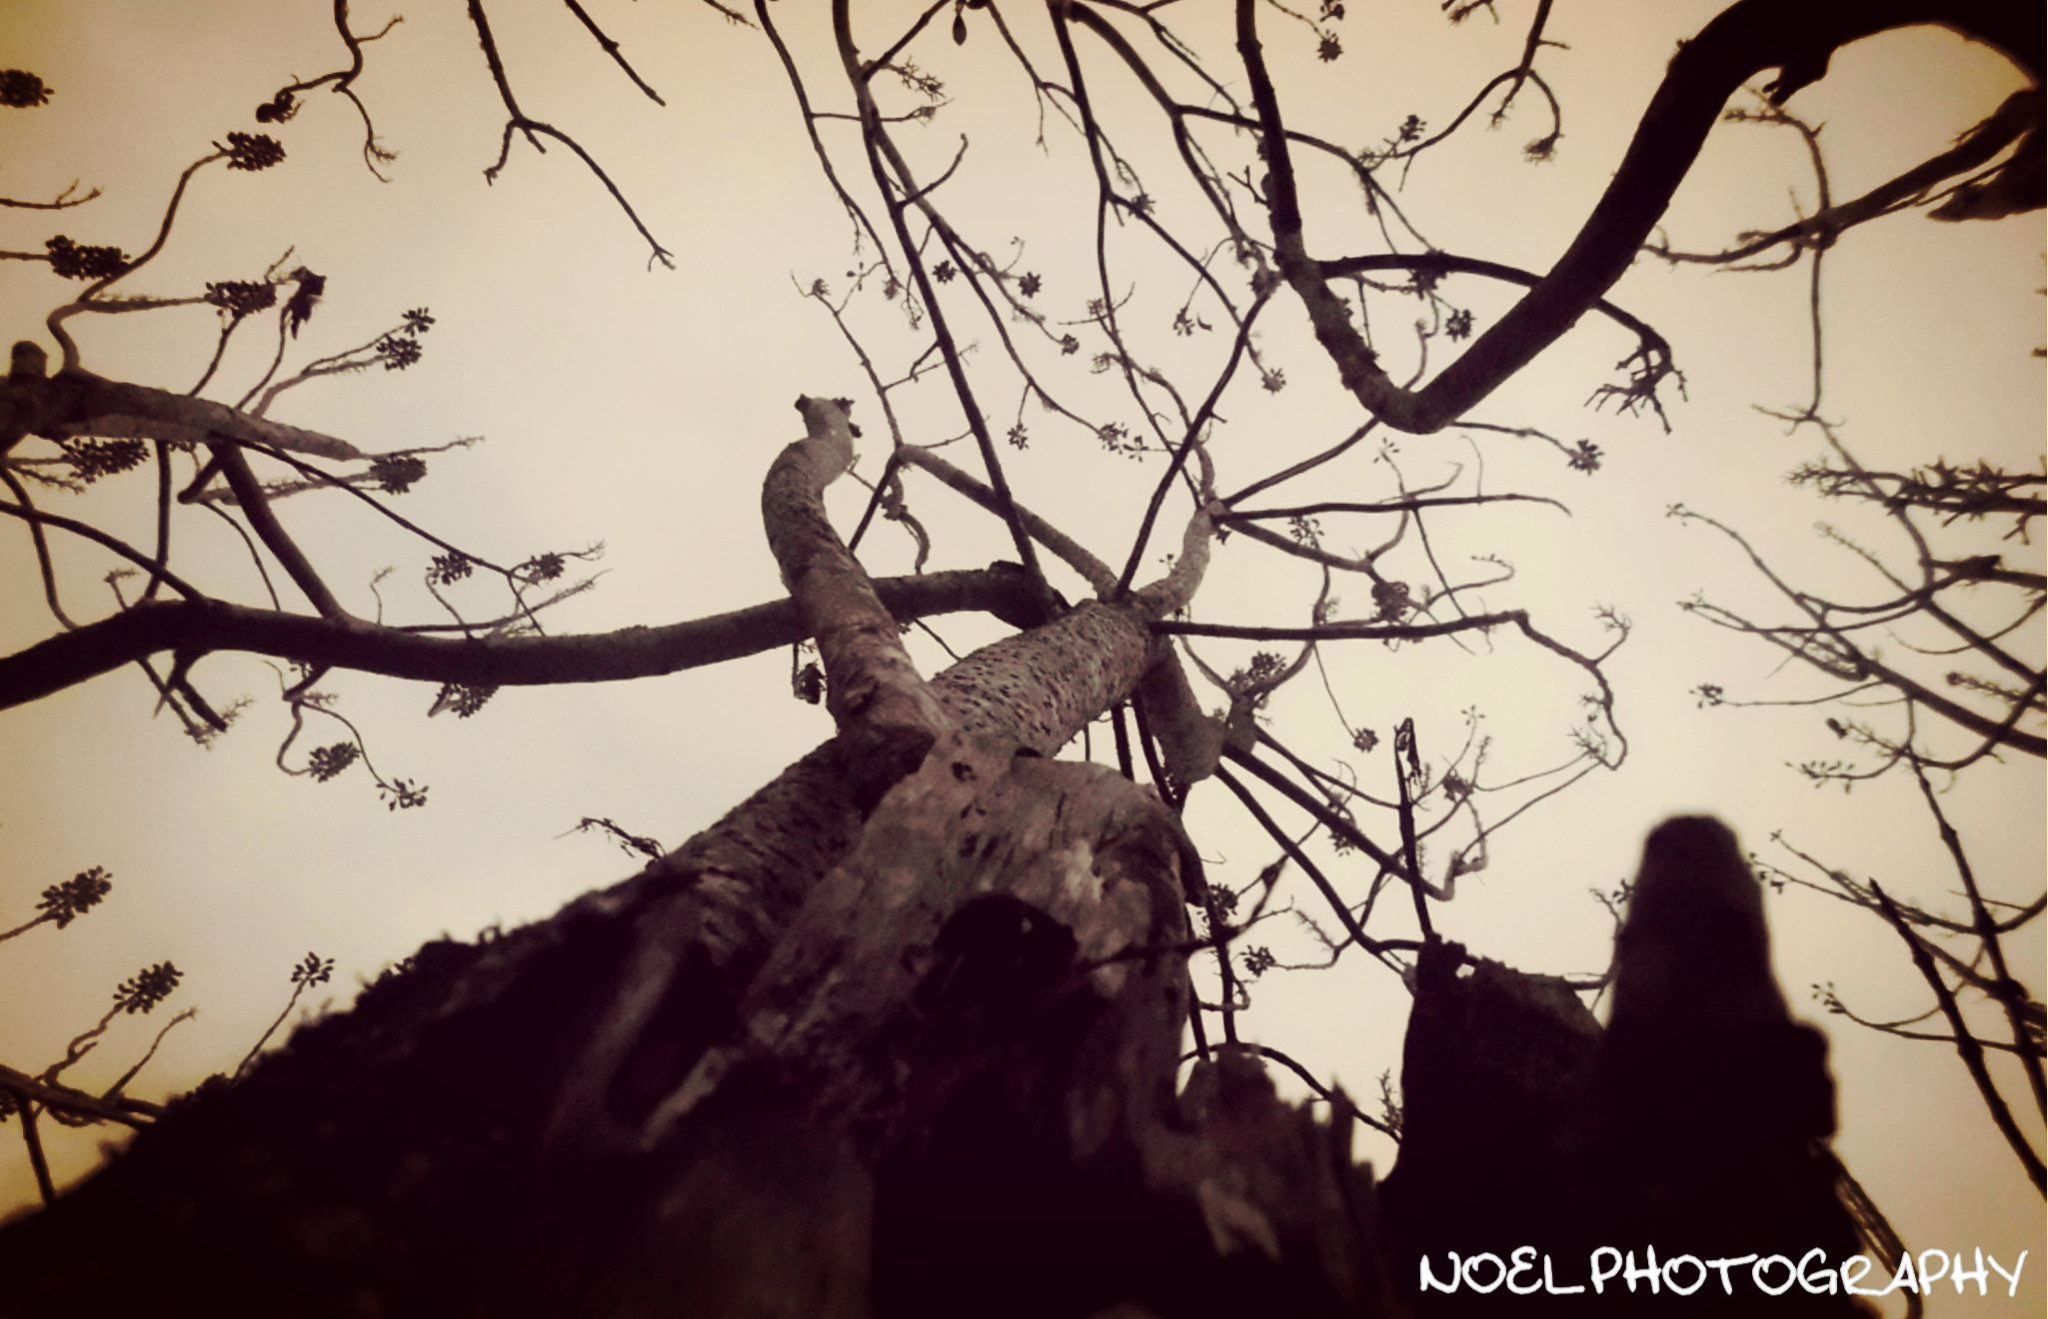 The Spooky Old Tree by Noel Photography